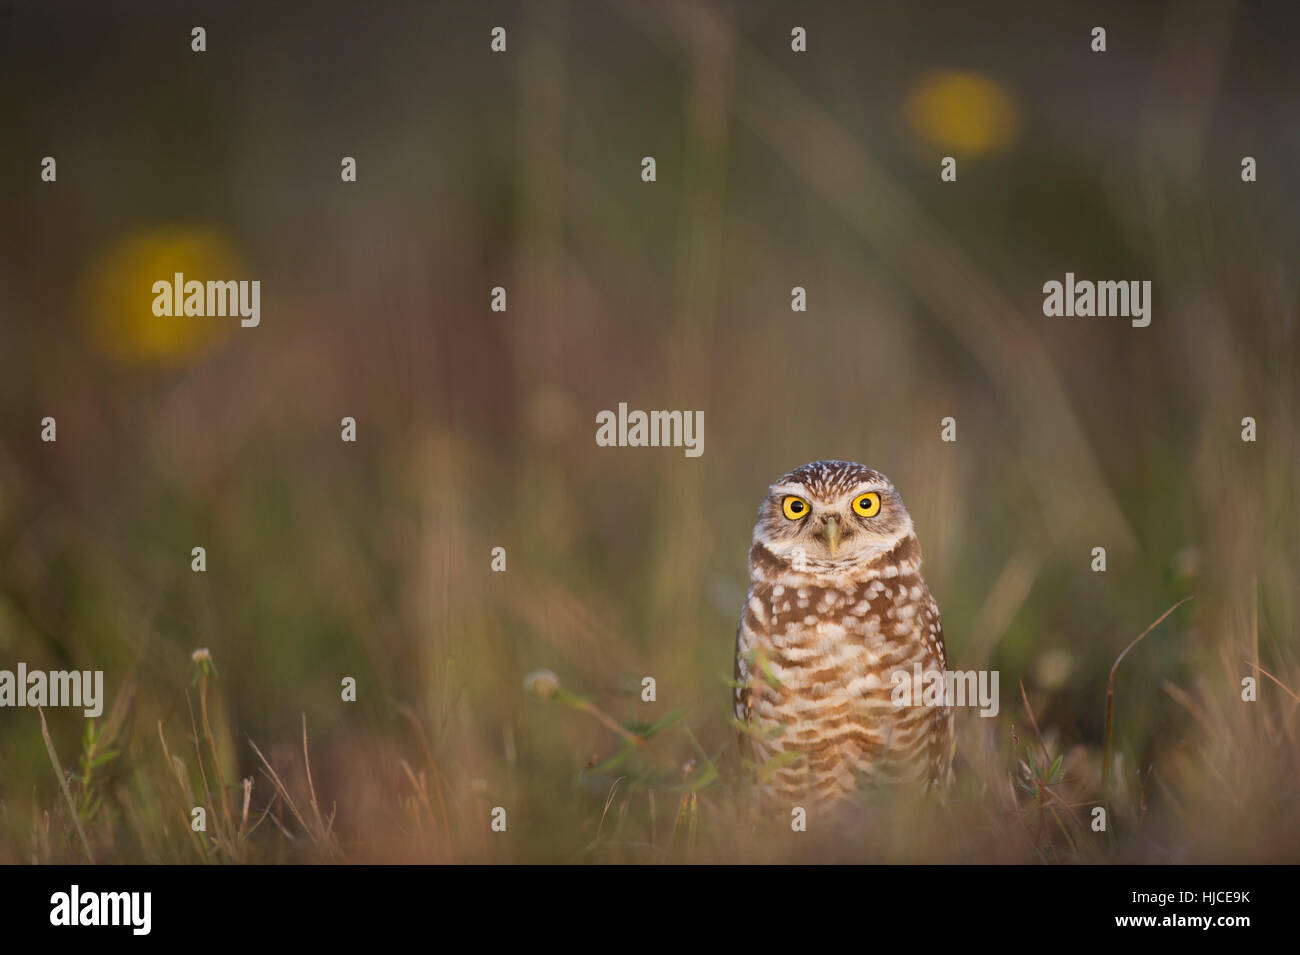 A Florida Burrowing Owl stands in an open field with a couple of yellow flowers in the background. - Stock Image